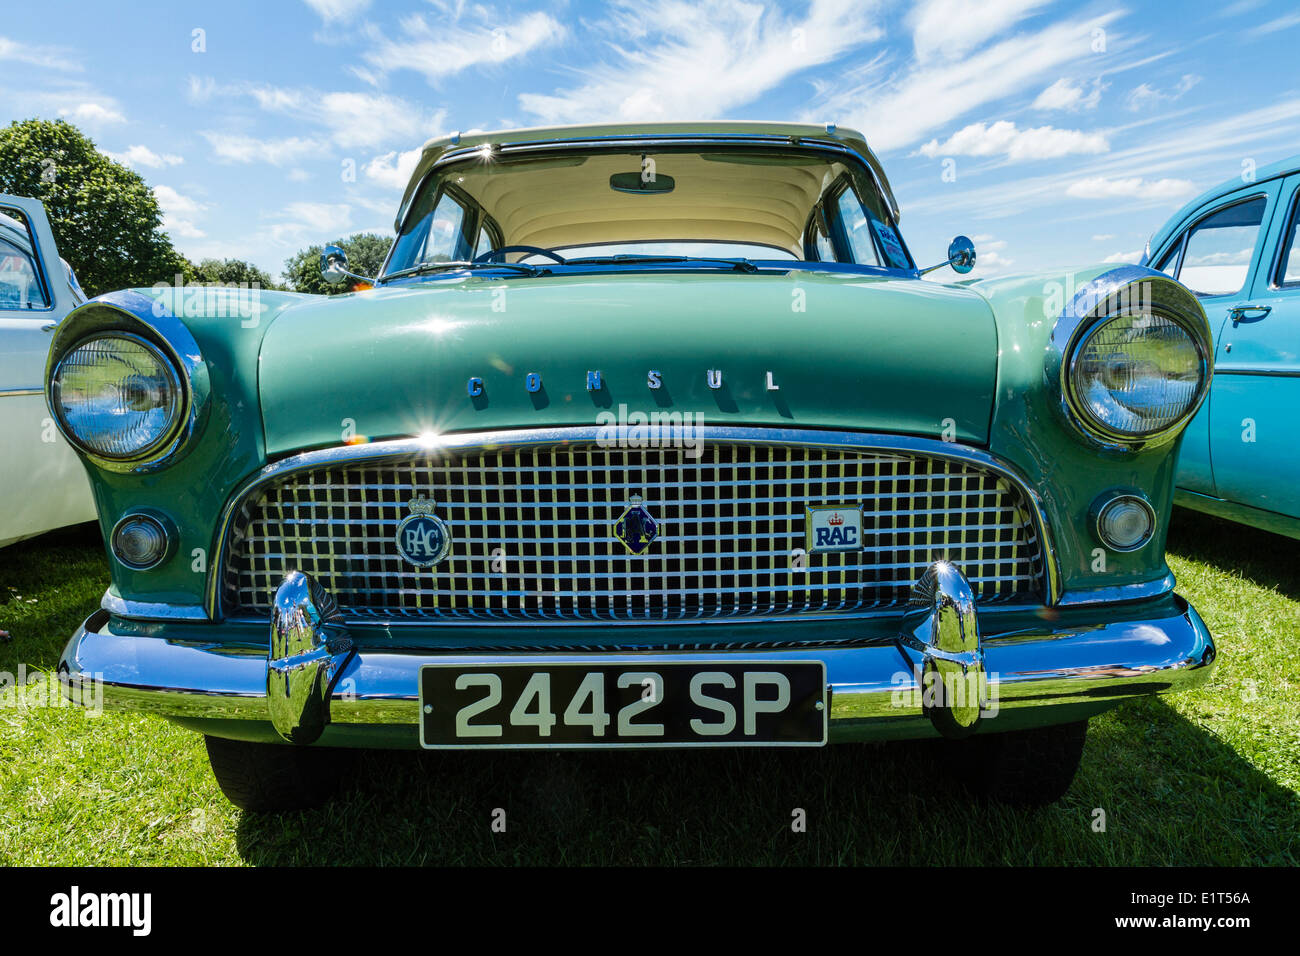 1950s Ford Consul at classic car show - Stock Image